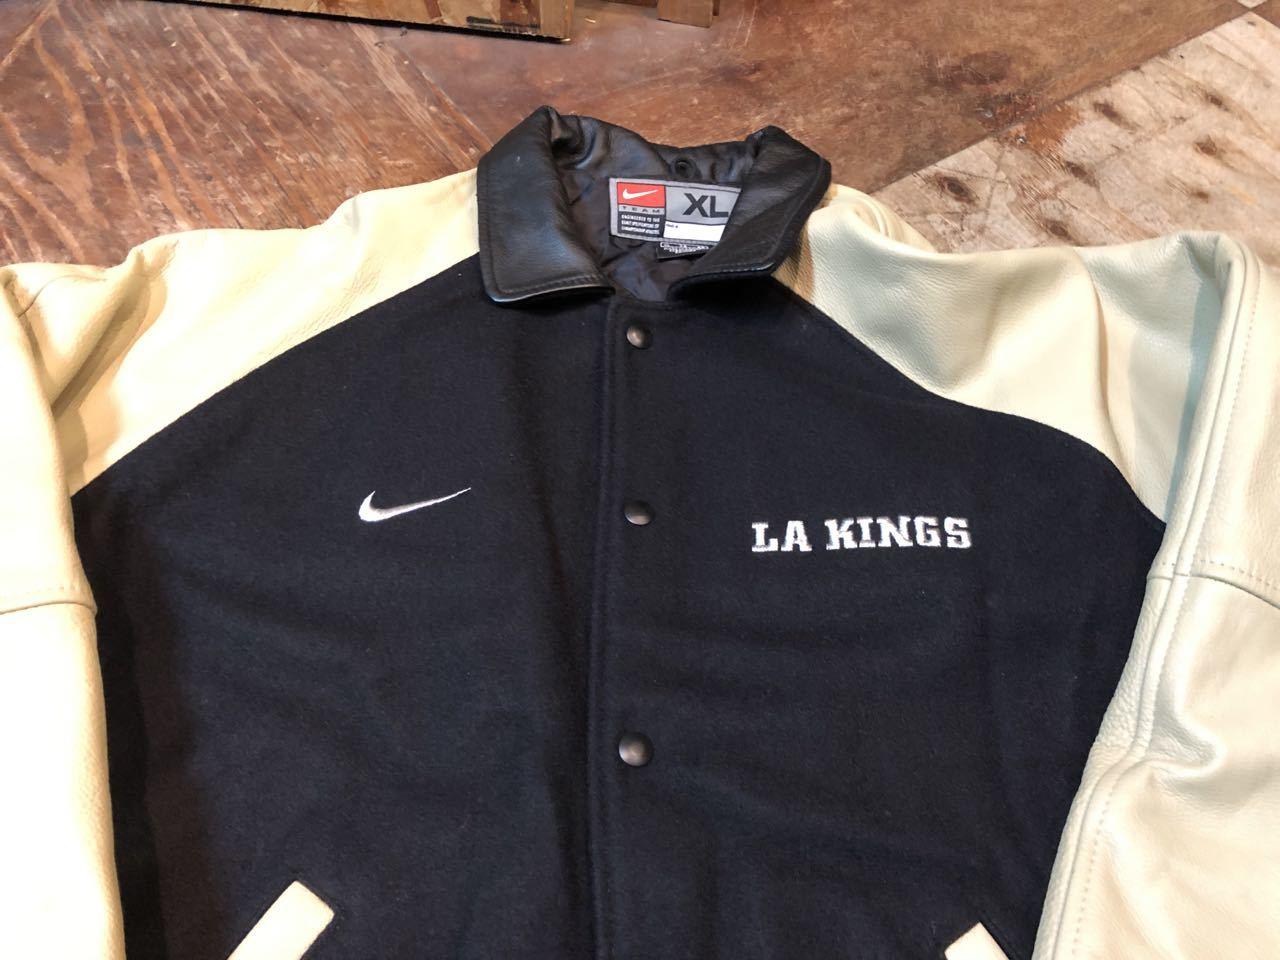 10月14日(月)入荷!MADE IN CANADA NIKE L.A KINGS スタジャン!_c0144020_13380600.jpg